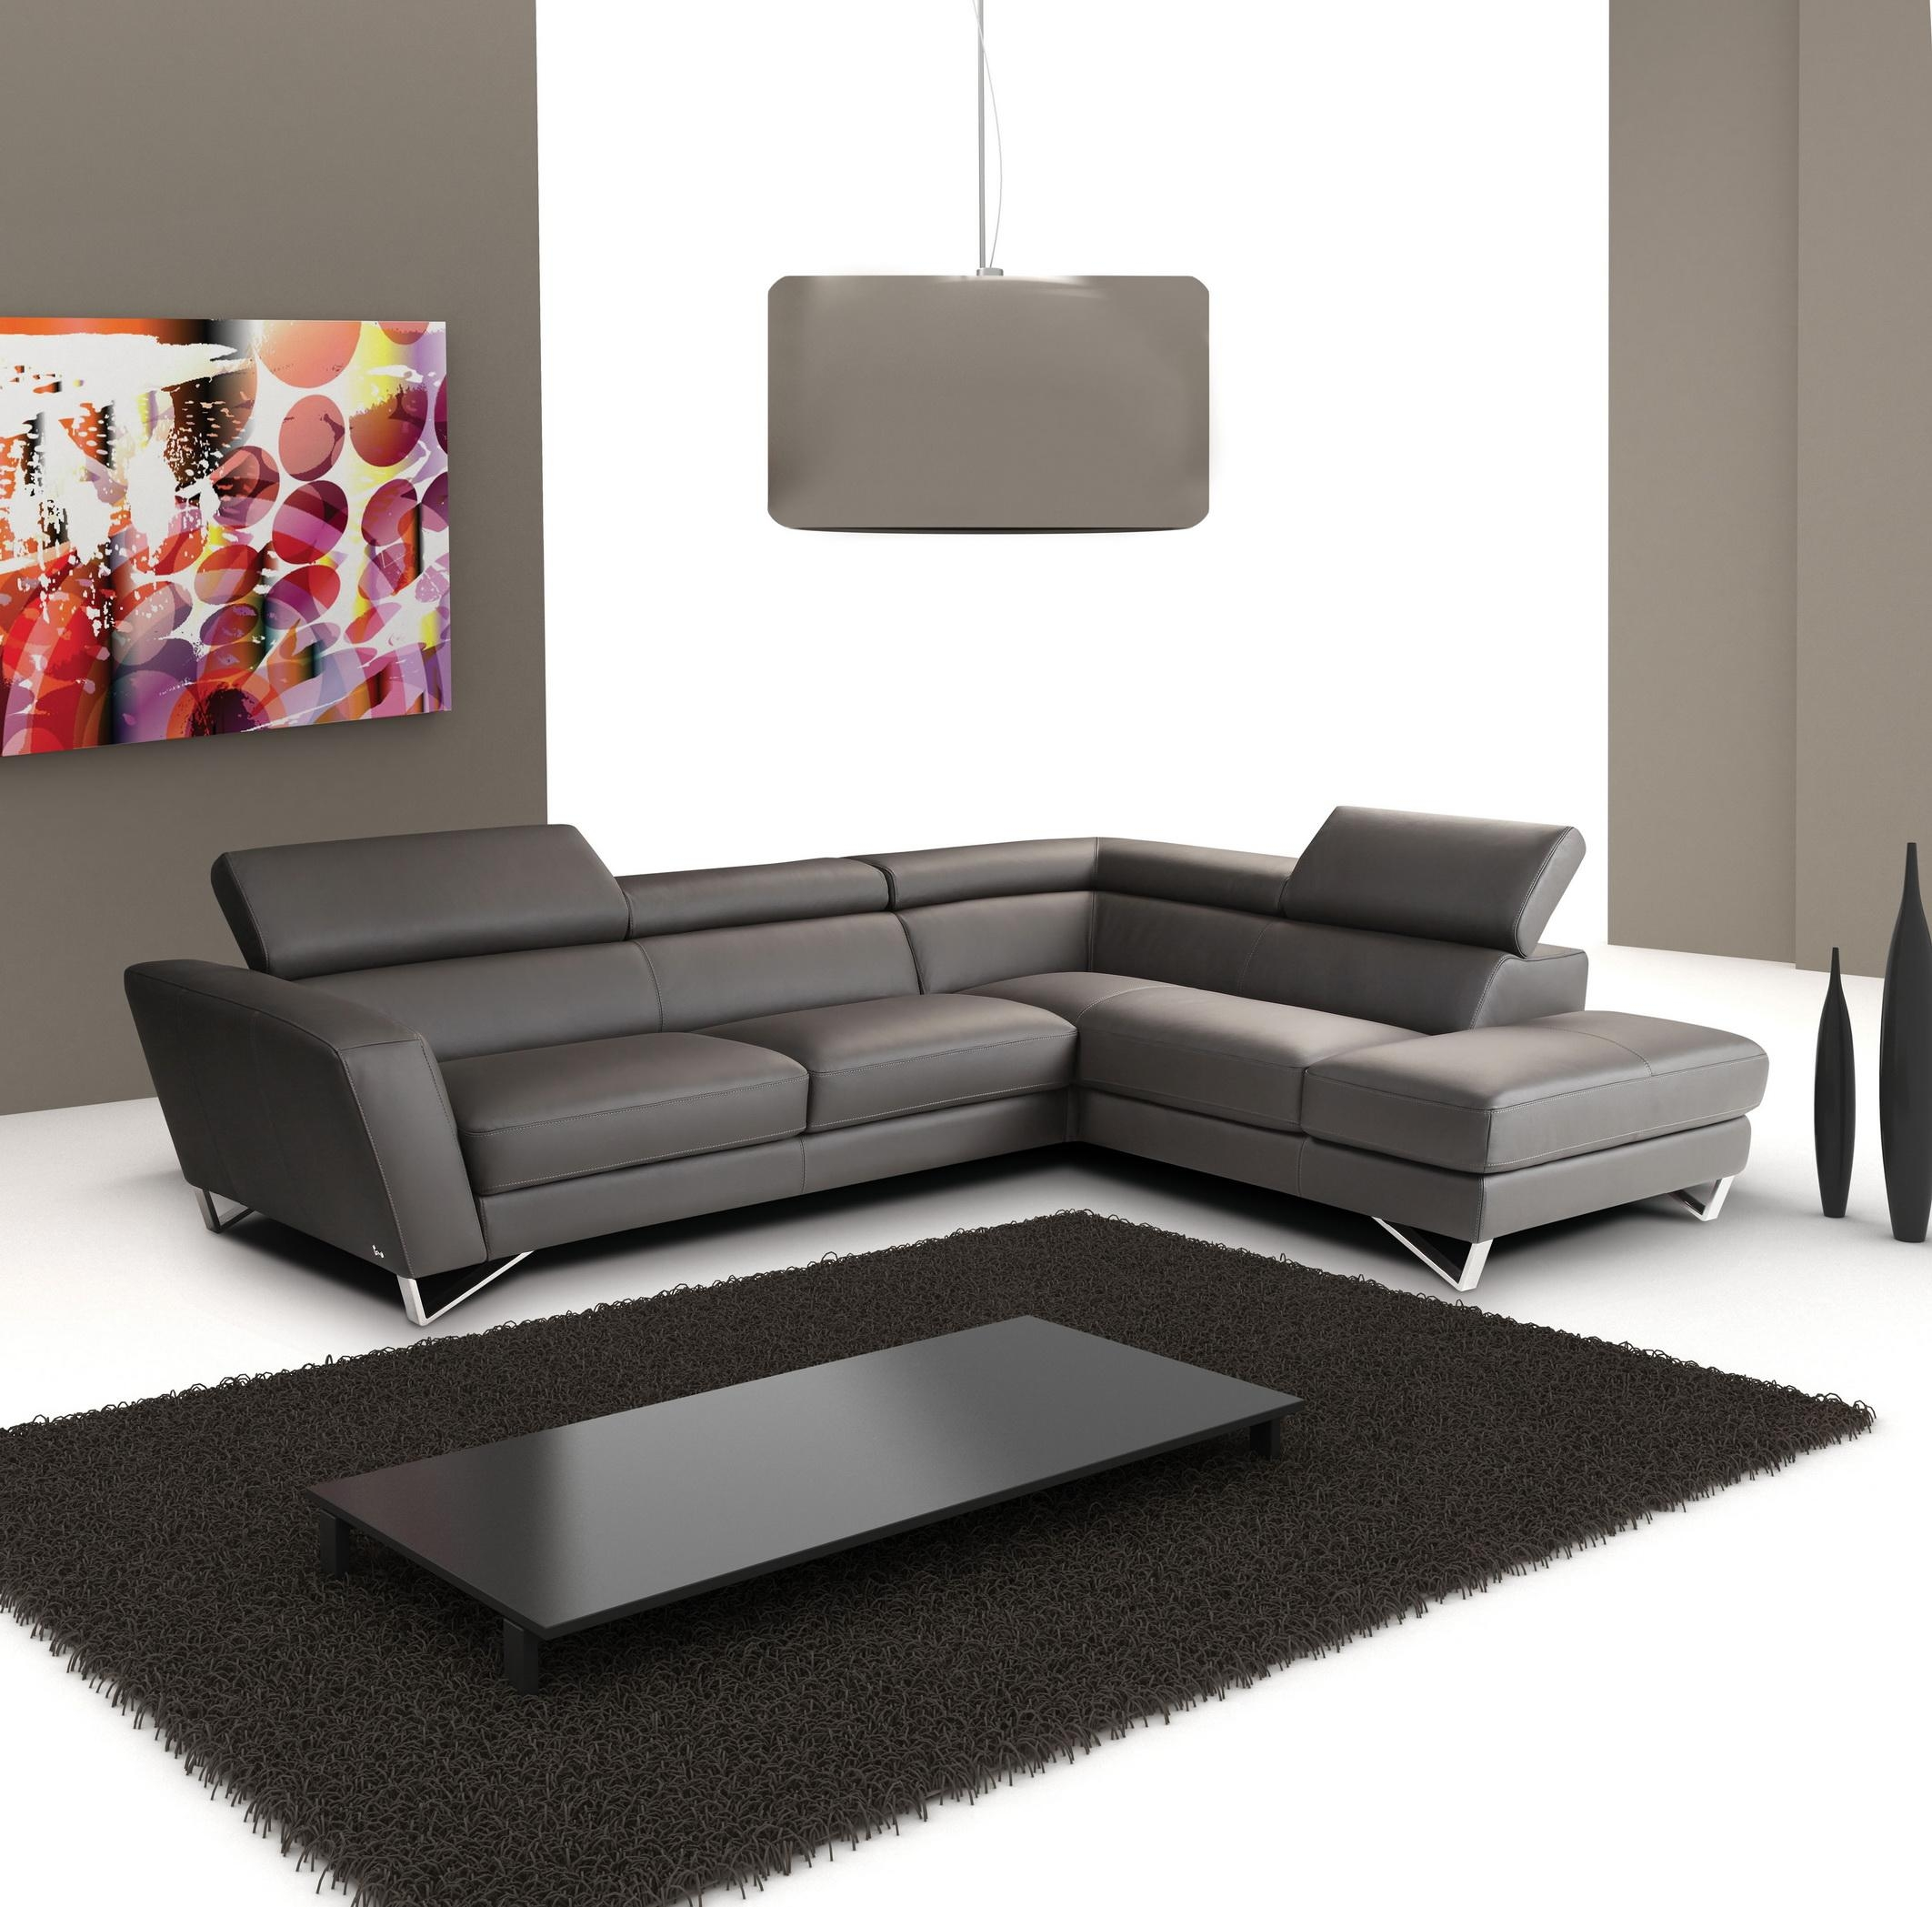 Modern Leather Sectional Sofa – S3Net – Sectional Sofas Sale With Sleek Sectional Sofa (Image 13 of 20)